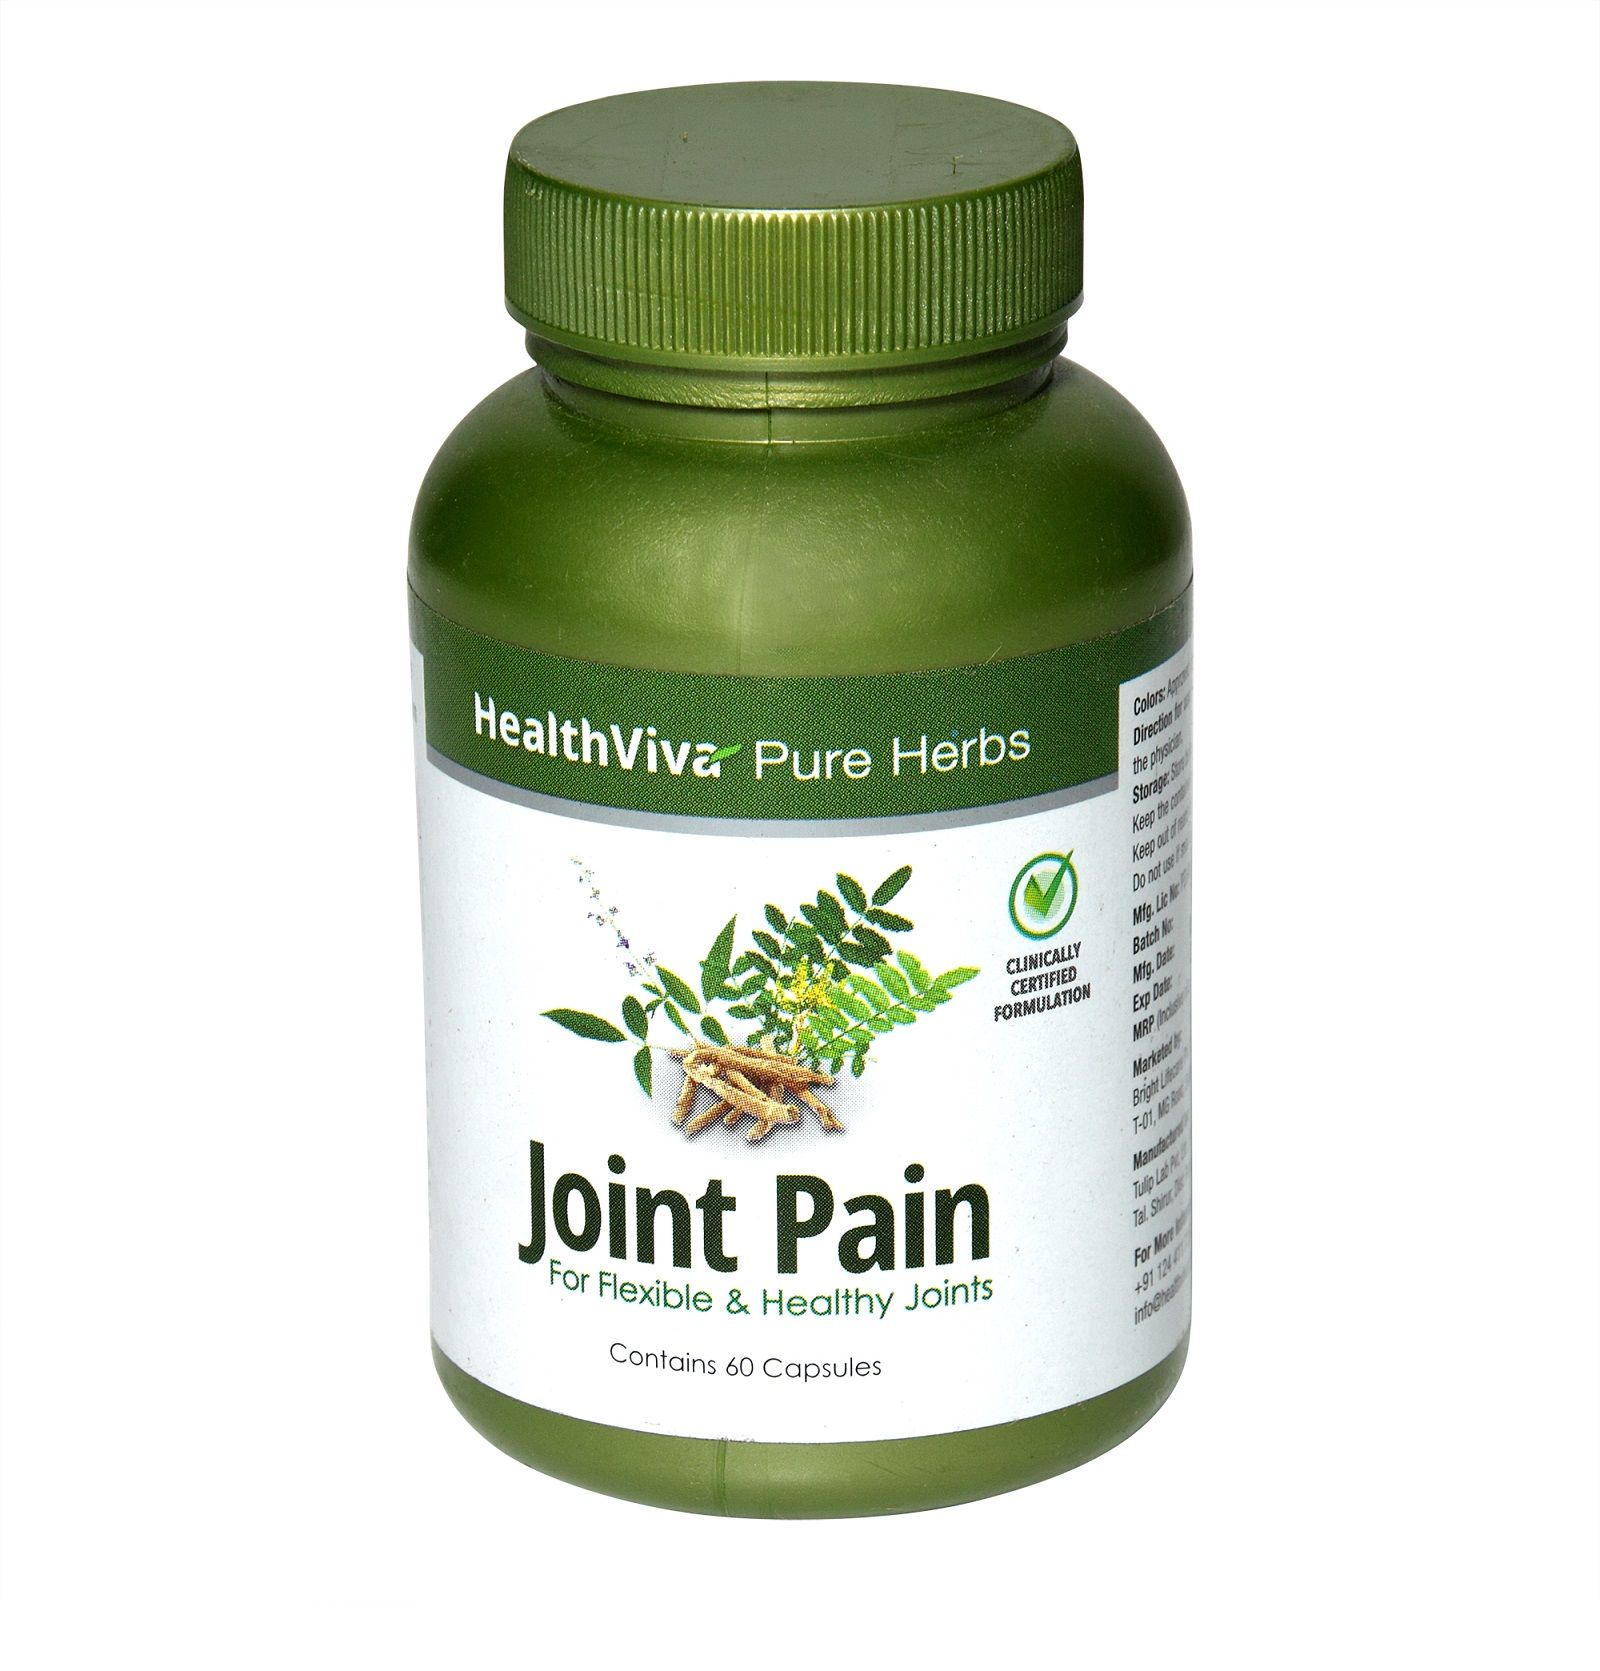 HealthViva Pure Herbs Joint Pain